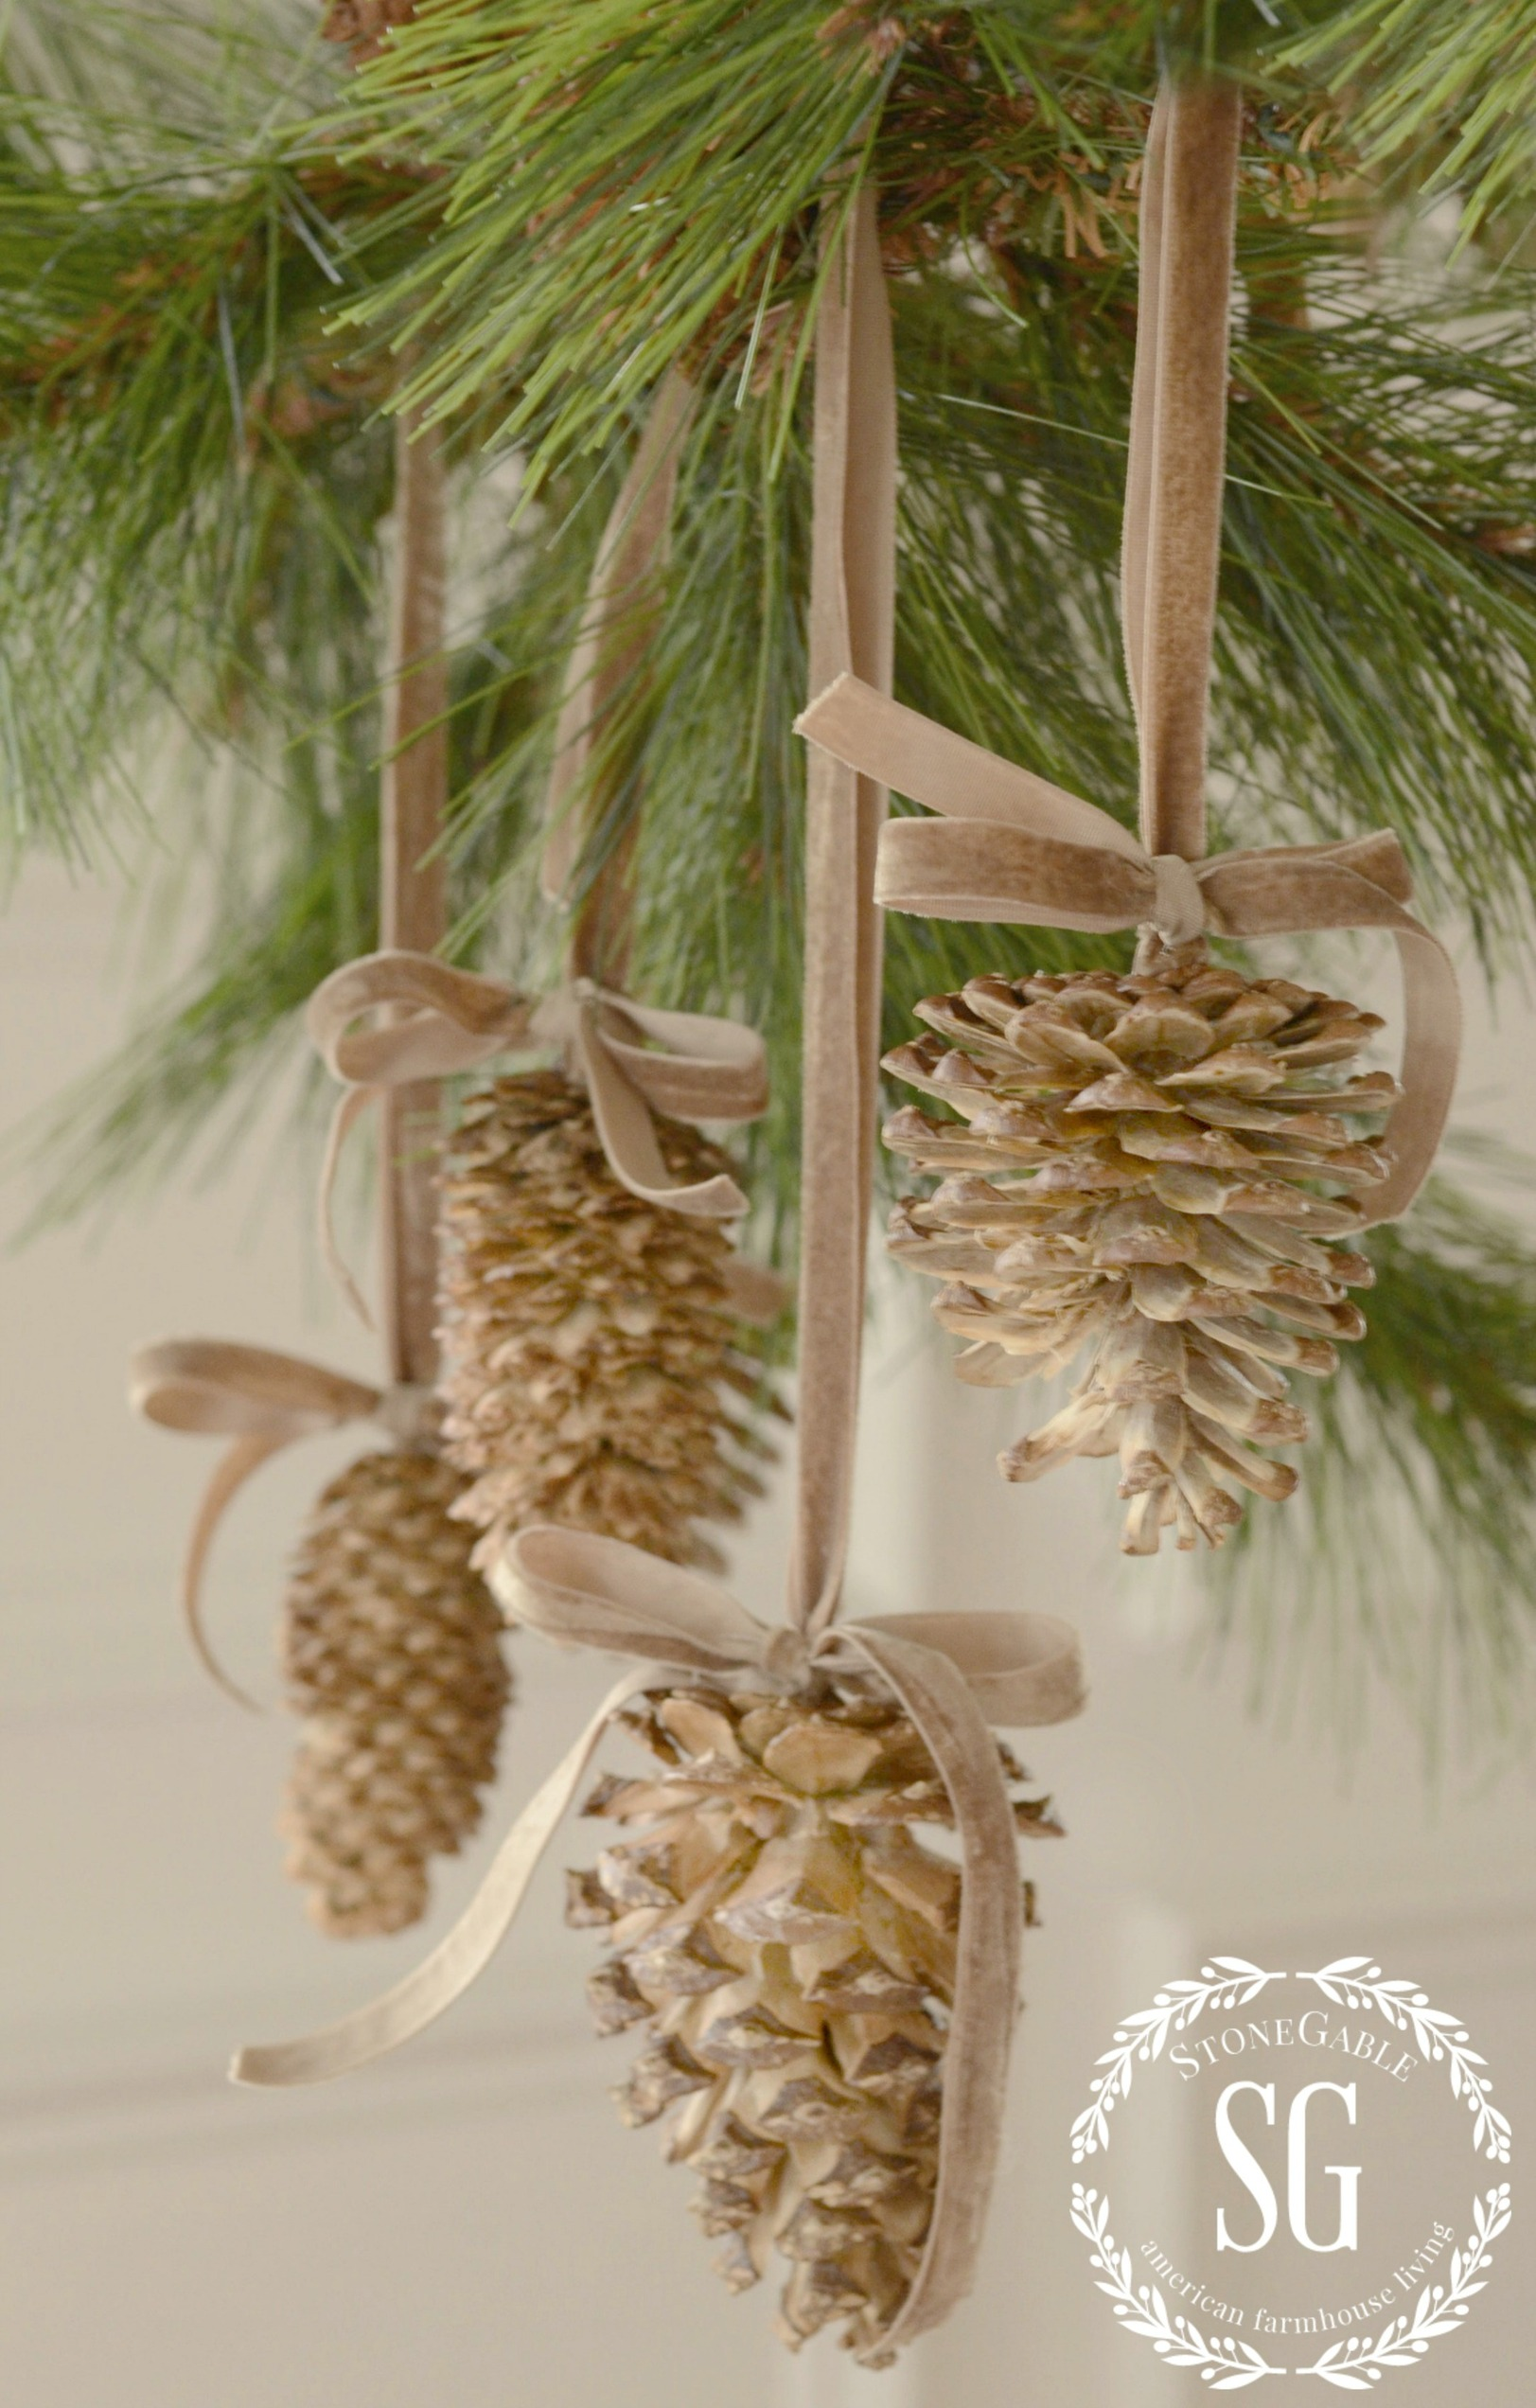 Bleached pinecones stonegable Homemade christmas decorations using pine cones